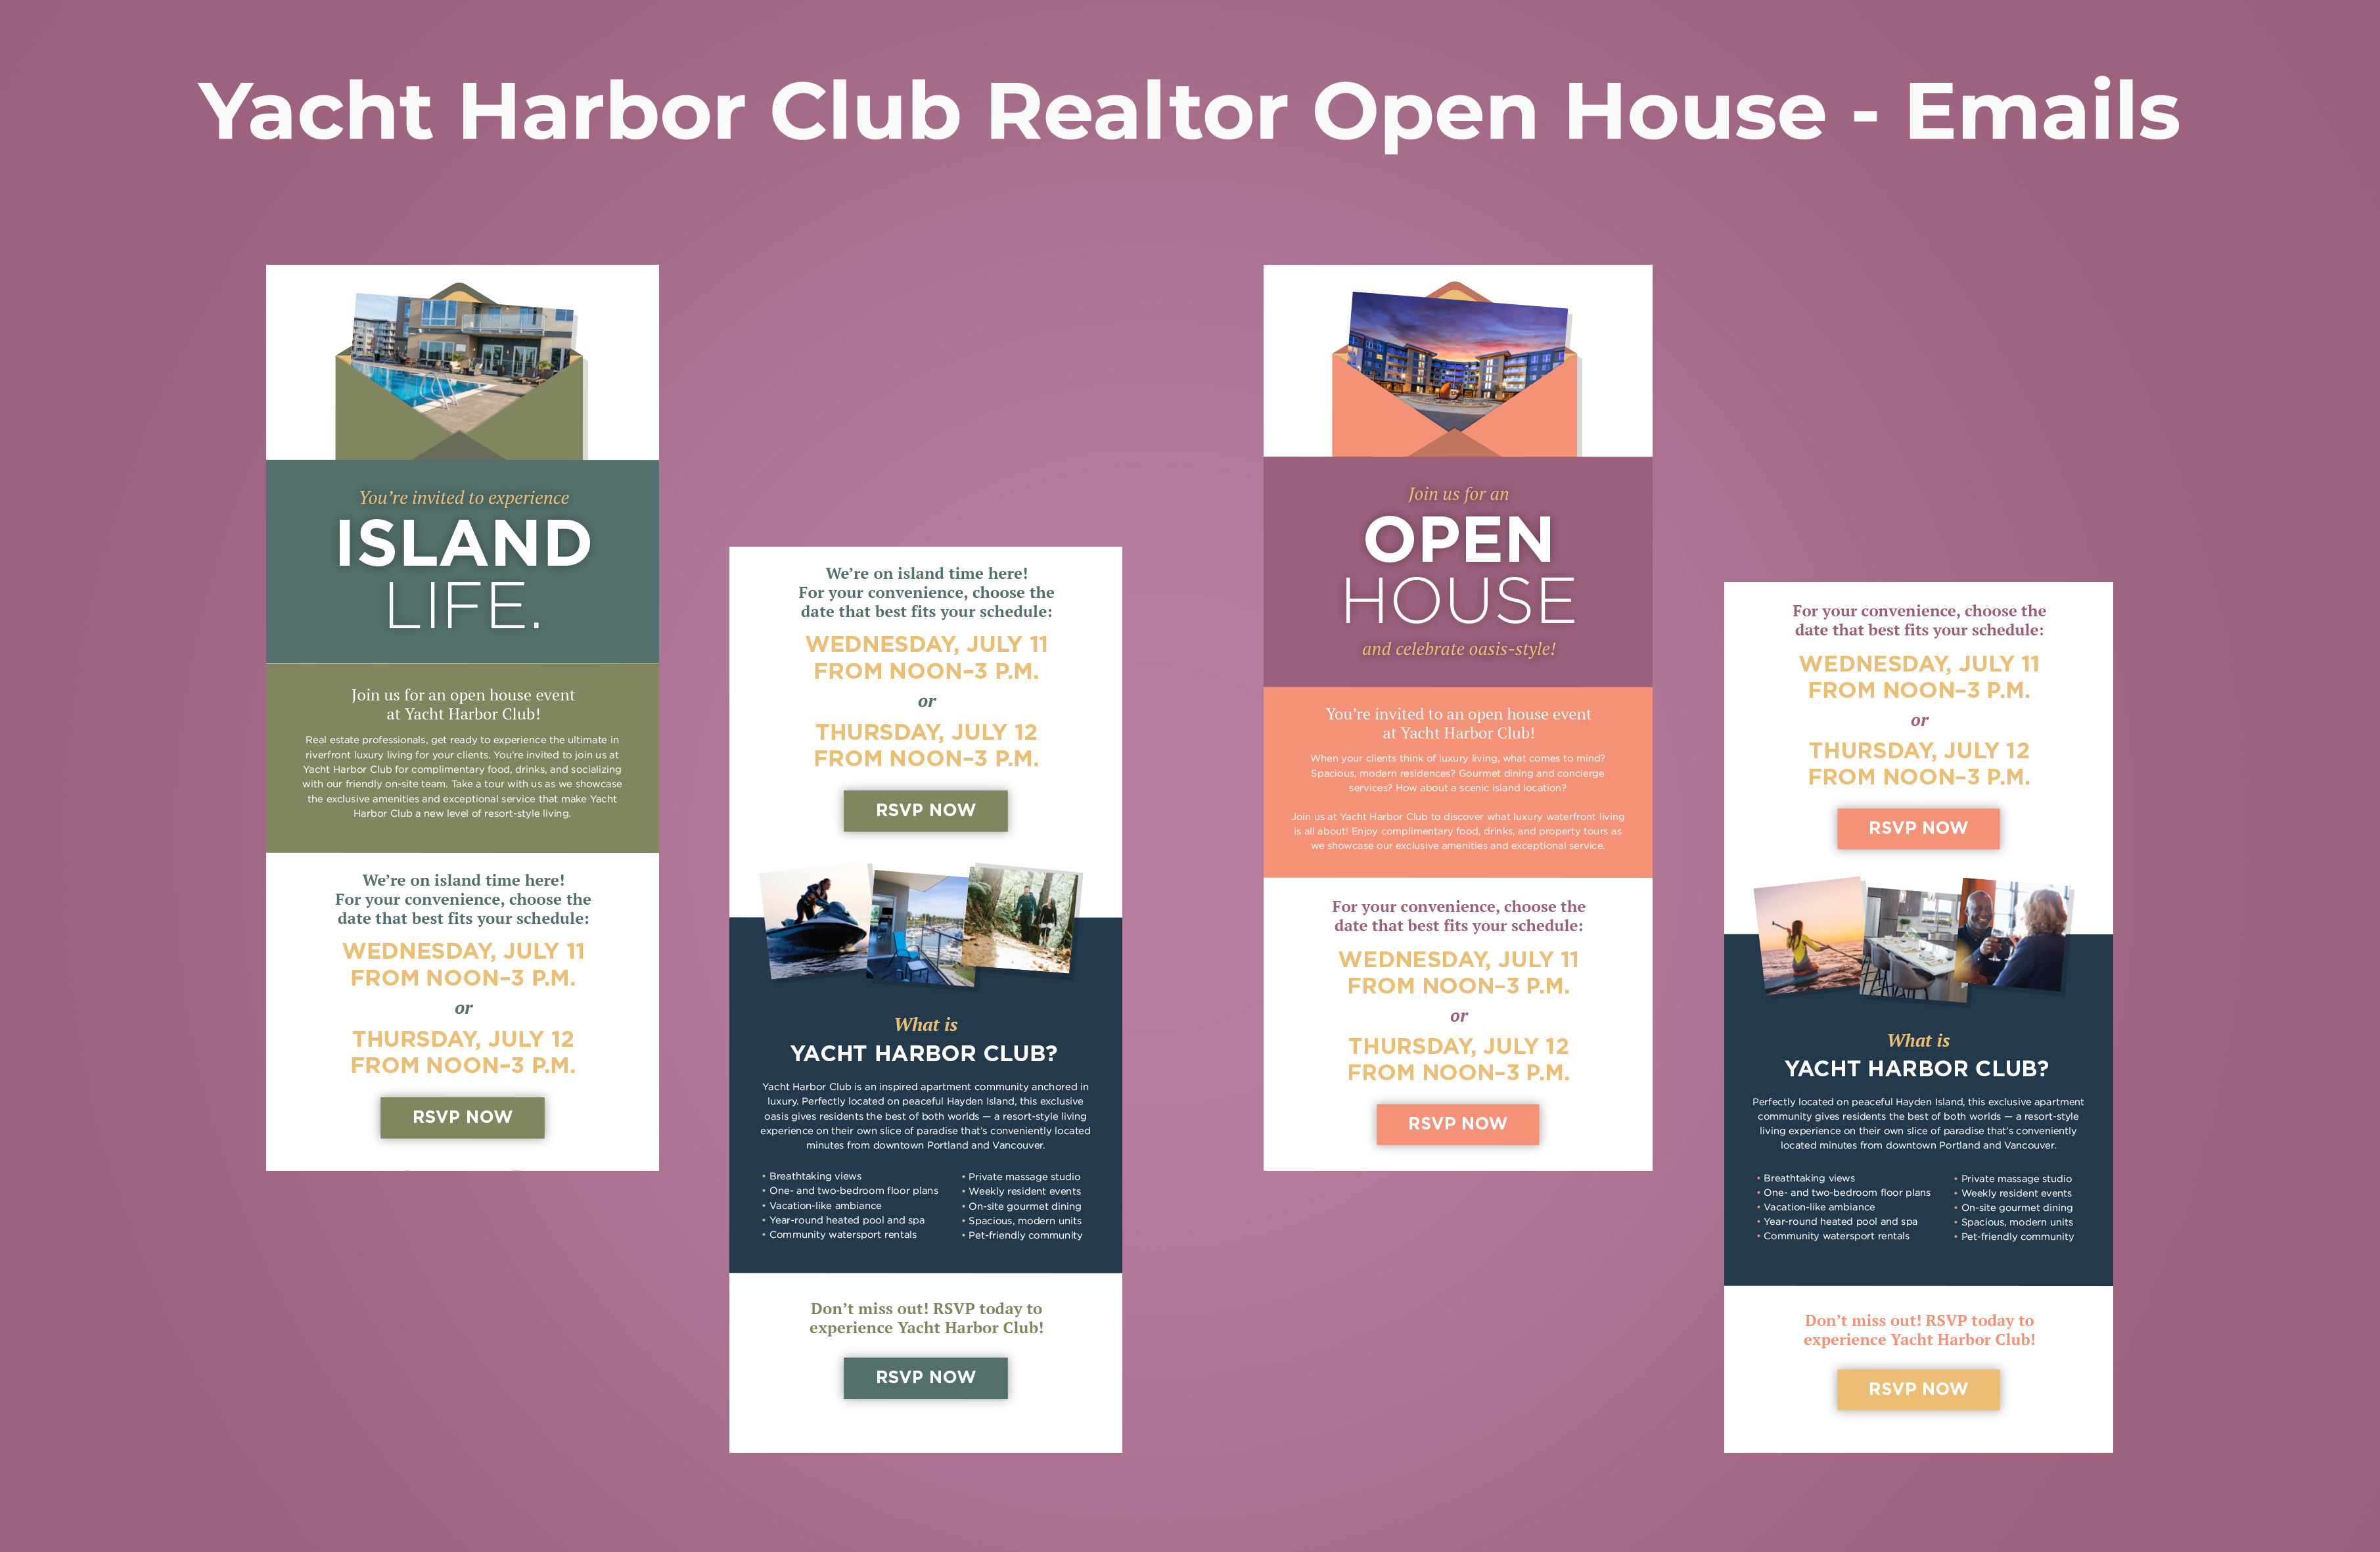 Yacht Harbor Club Realtor Open House Emails Graphic